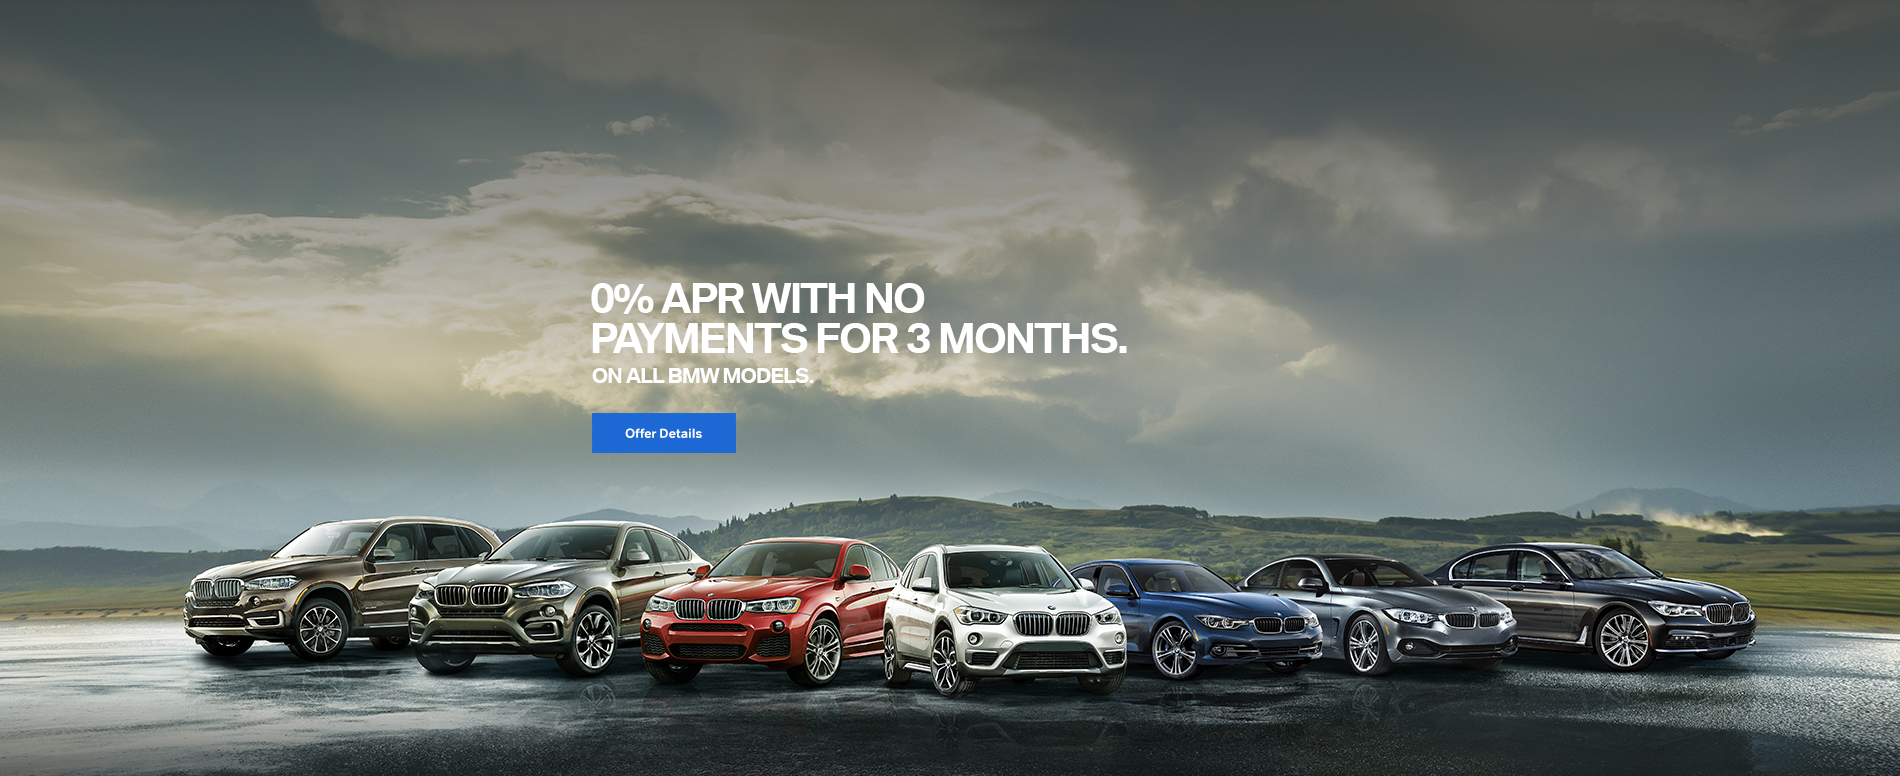 0% APR WITH NO PAYMENTS FOR 3 MONTHS